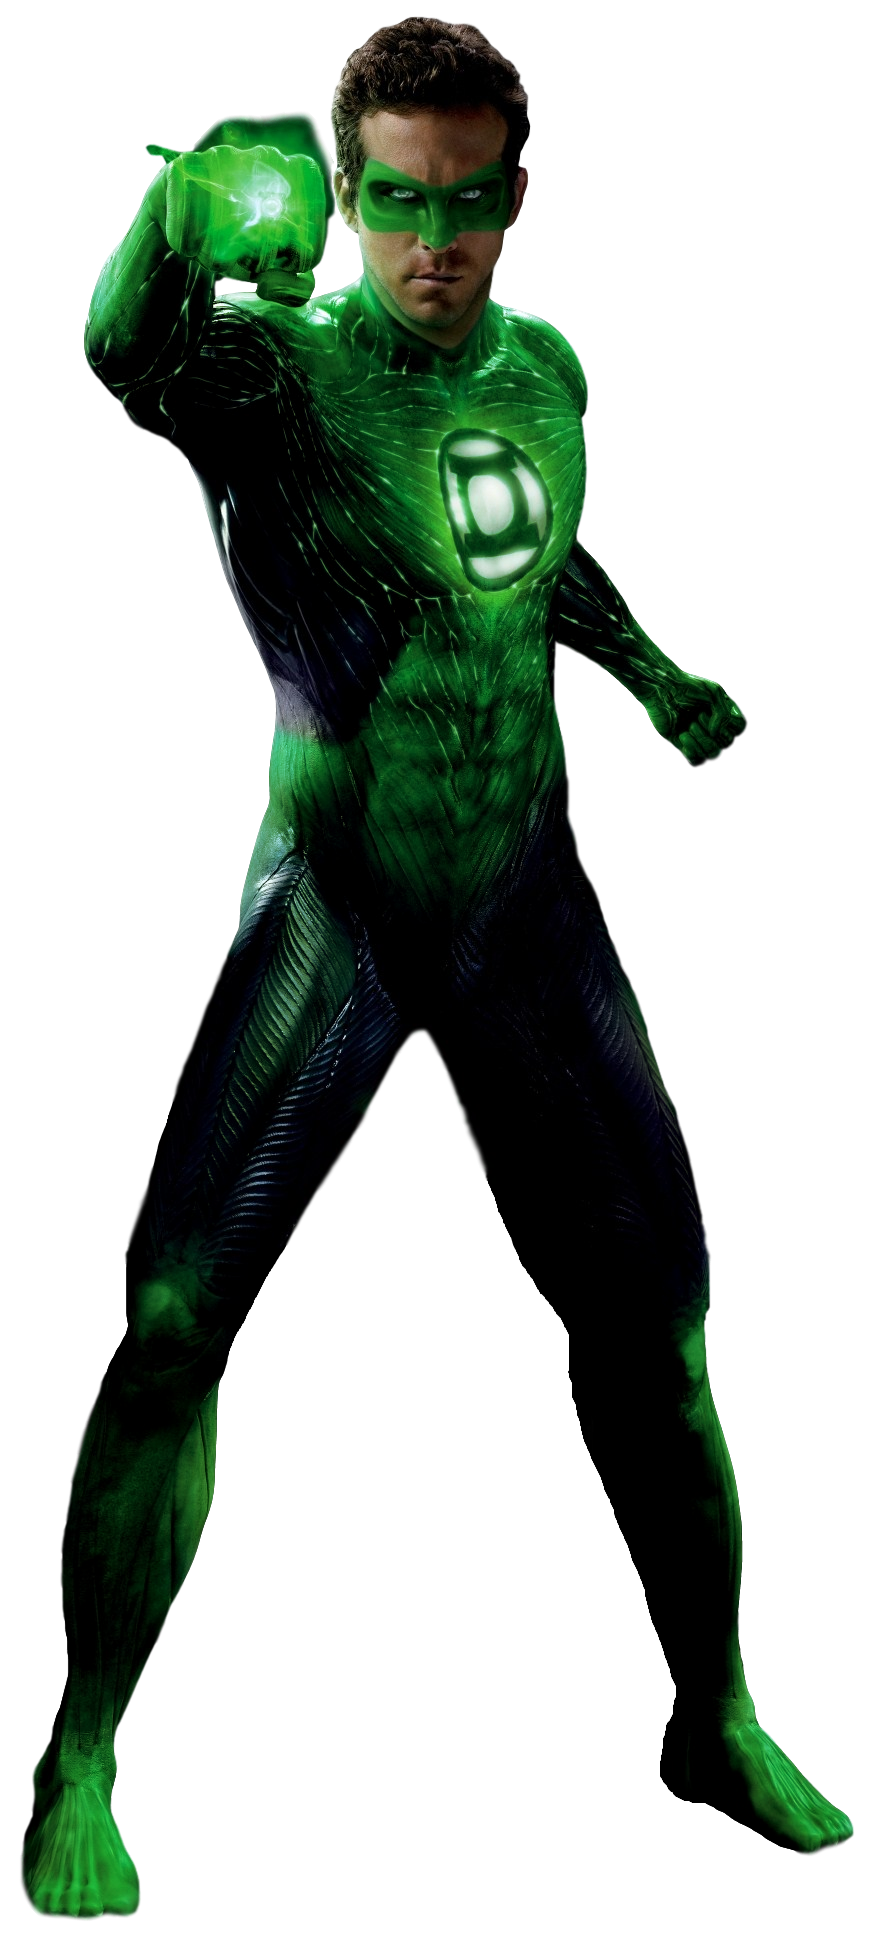 green lantern movie 2020. dc movies: logos revealed for aquaman, the